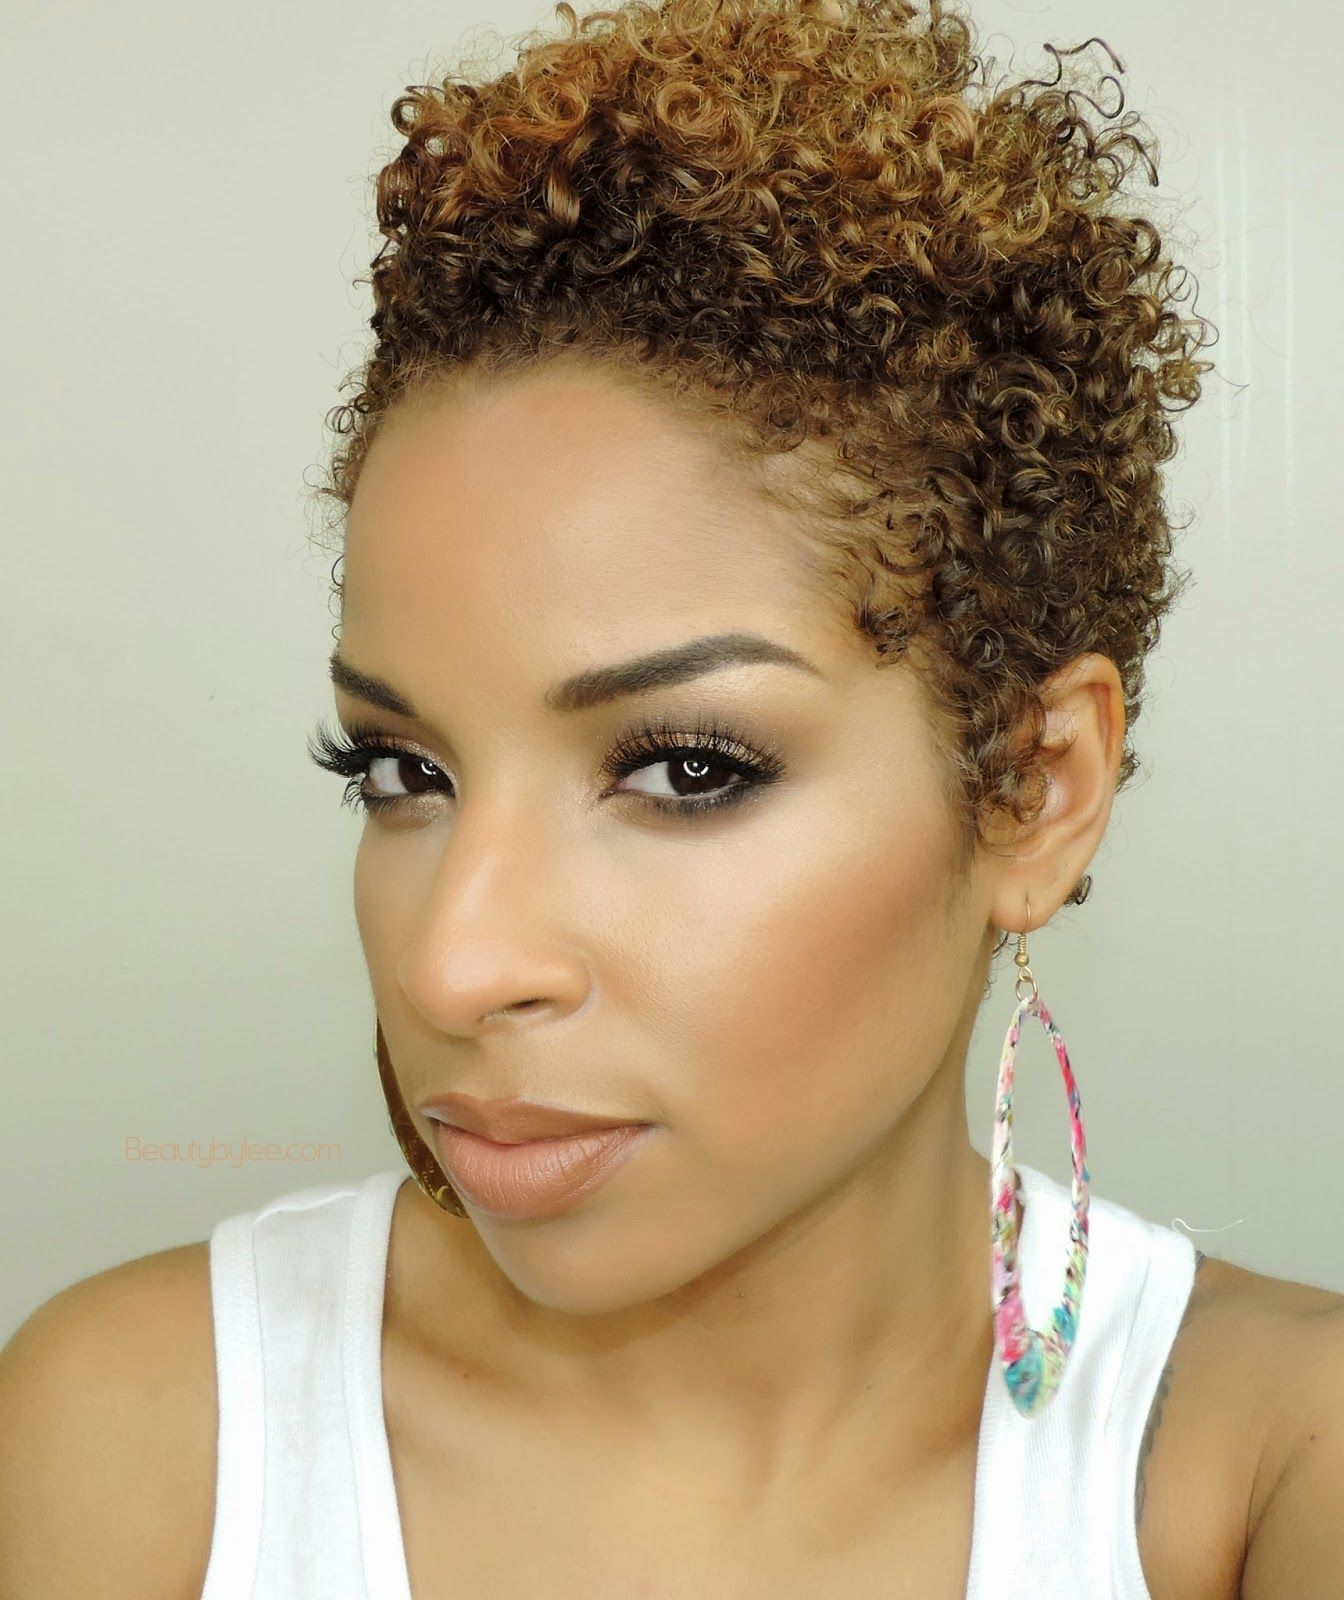 Short Natural Hairstyles With Color: Beauty By Lee: Get The Look